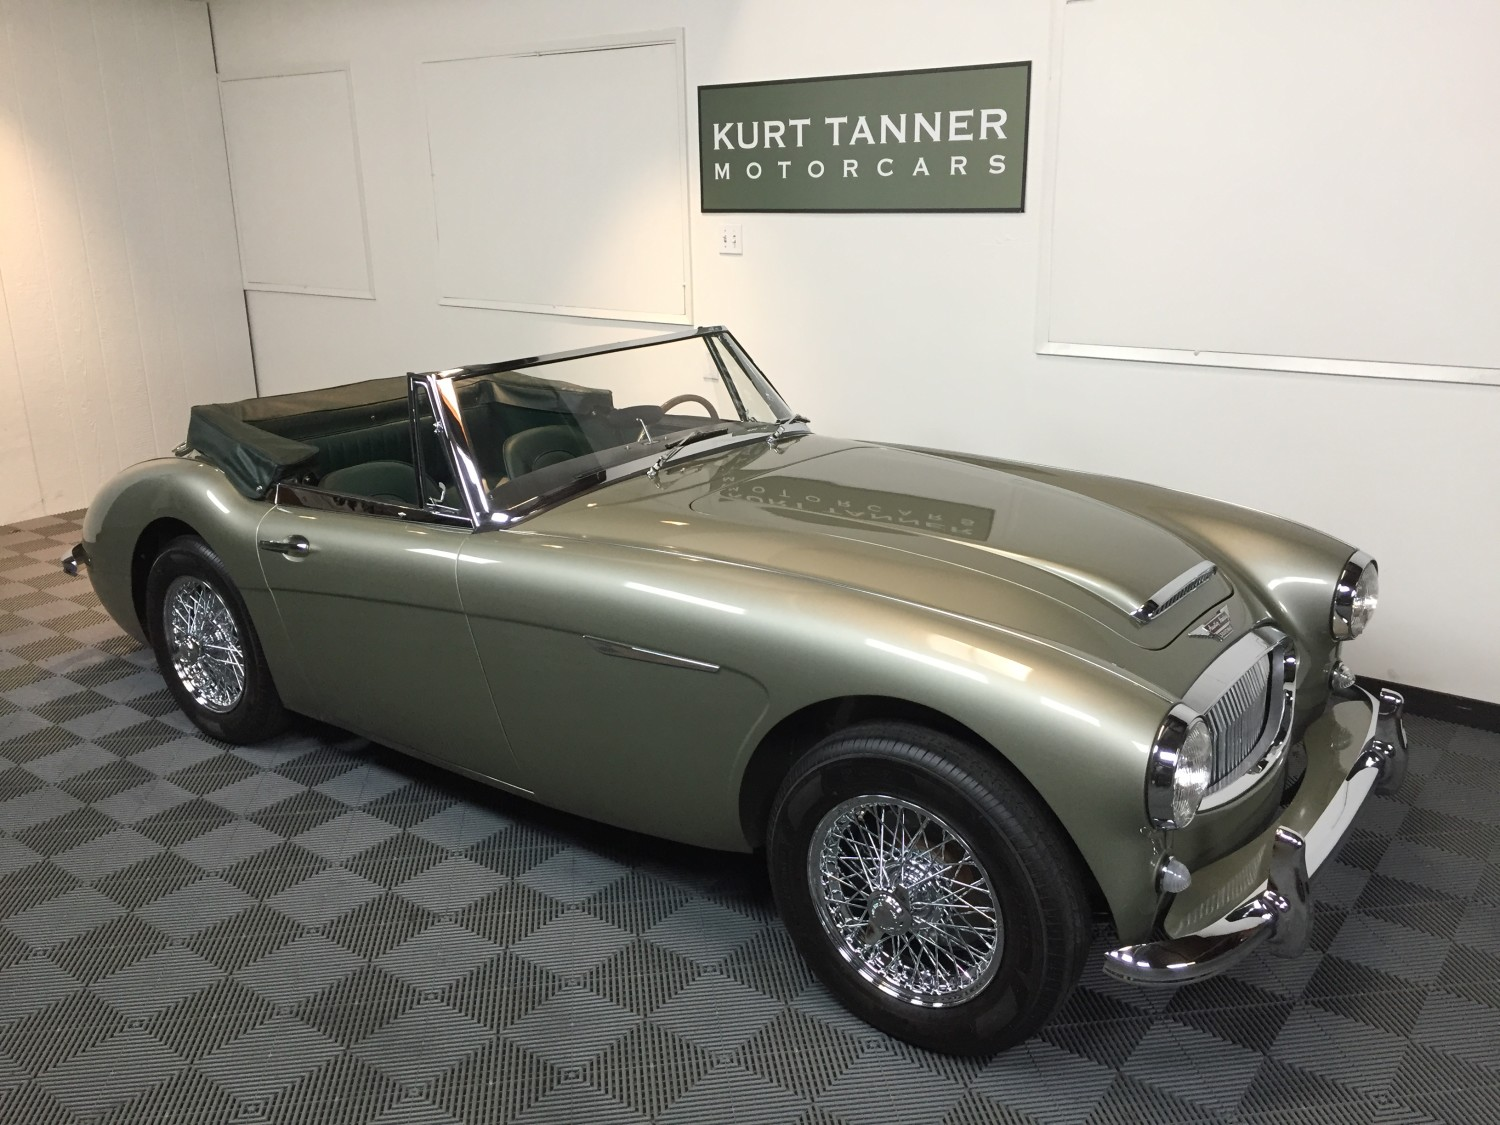 Sage Green Color Wheel Kurt Tanner Motorcars 187 Blog Archive 187 1965 Austin Healey